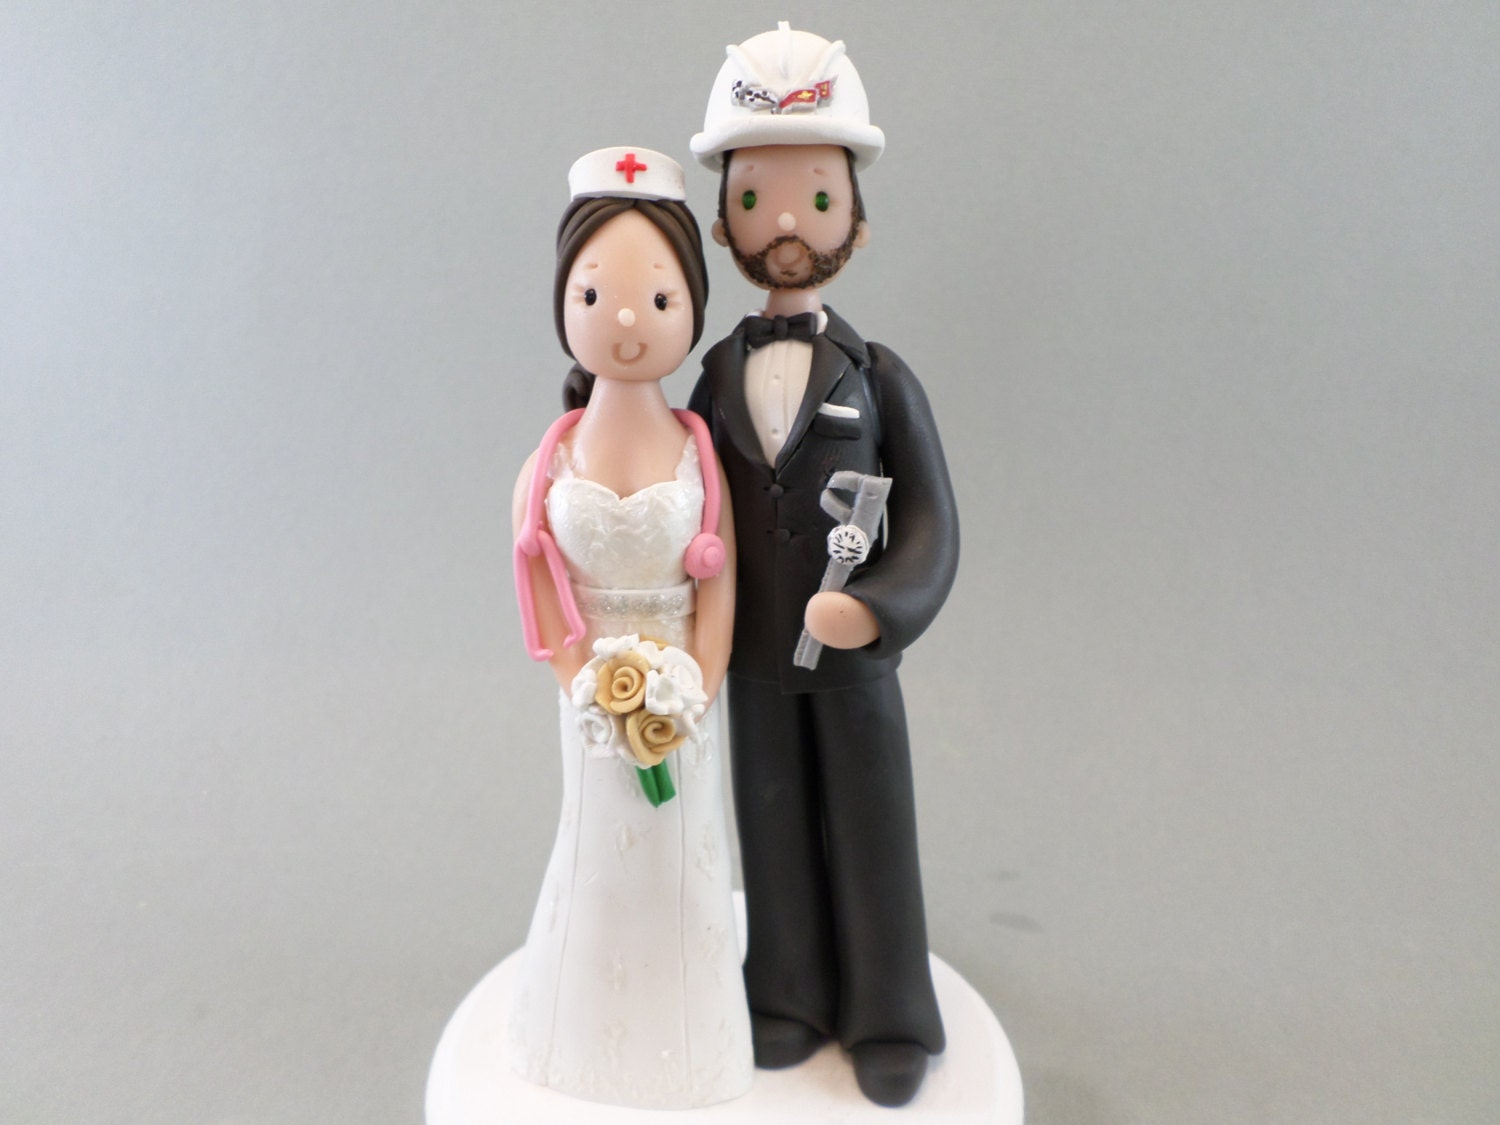 nurse wedding cake topper personalized amp engineer wedding cake topper 17950